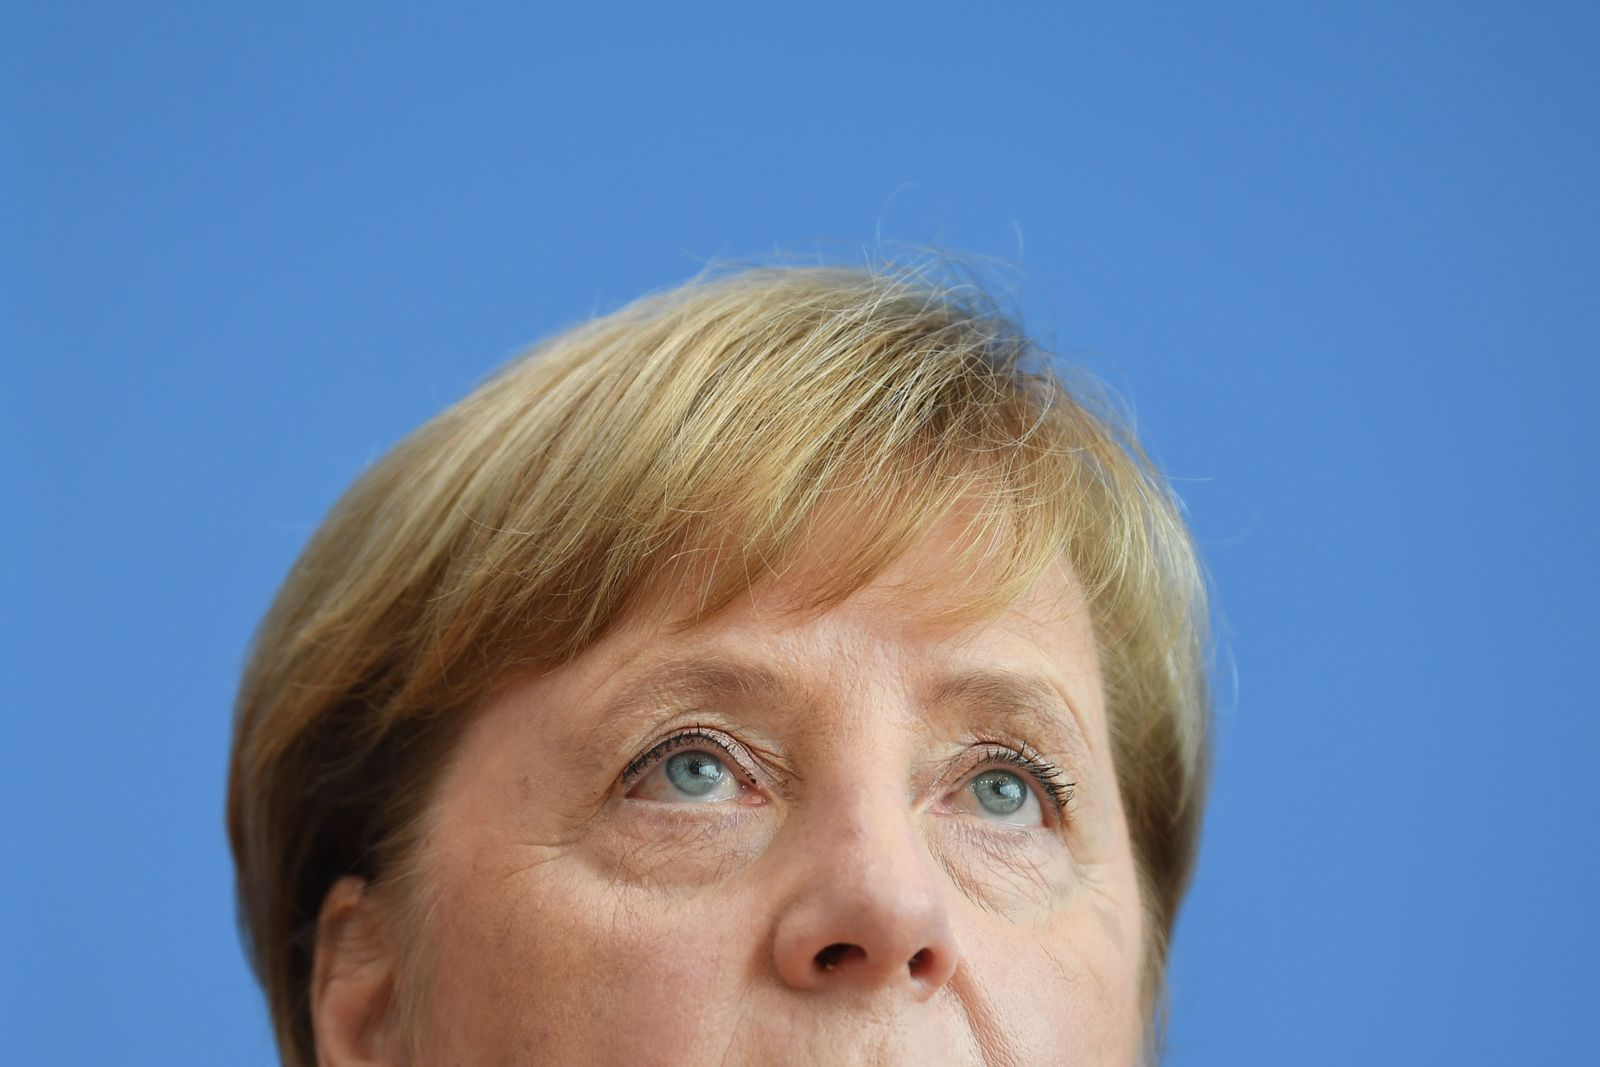 Presser Chancellor Merkel after a meeting of the Corona Cabinet, Berlin, Germany - 02 Nov 2020